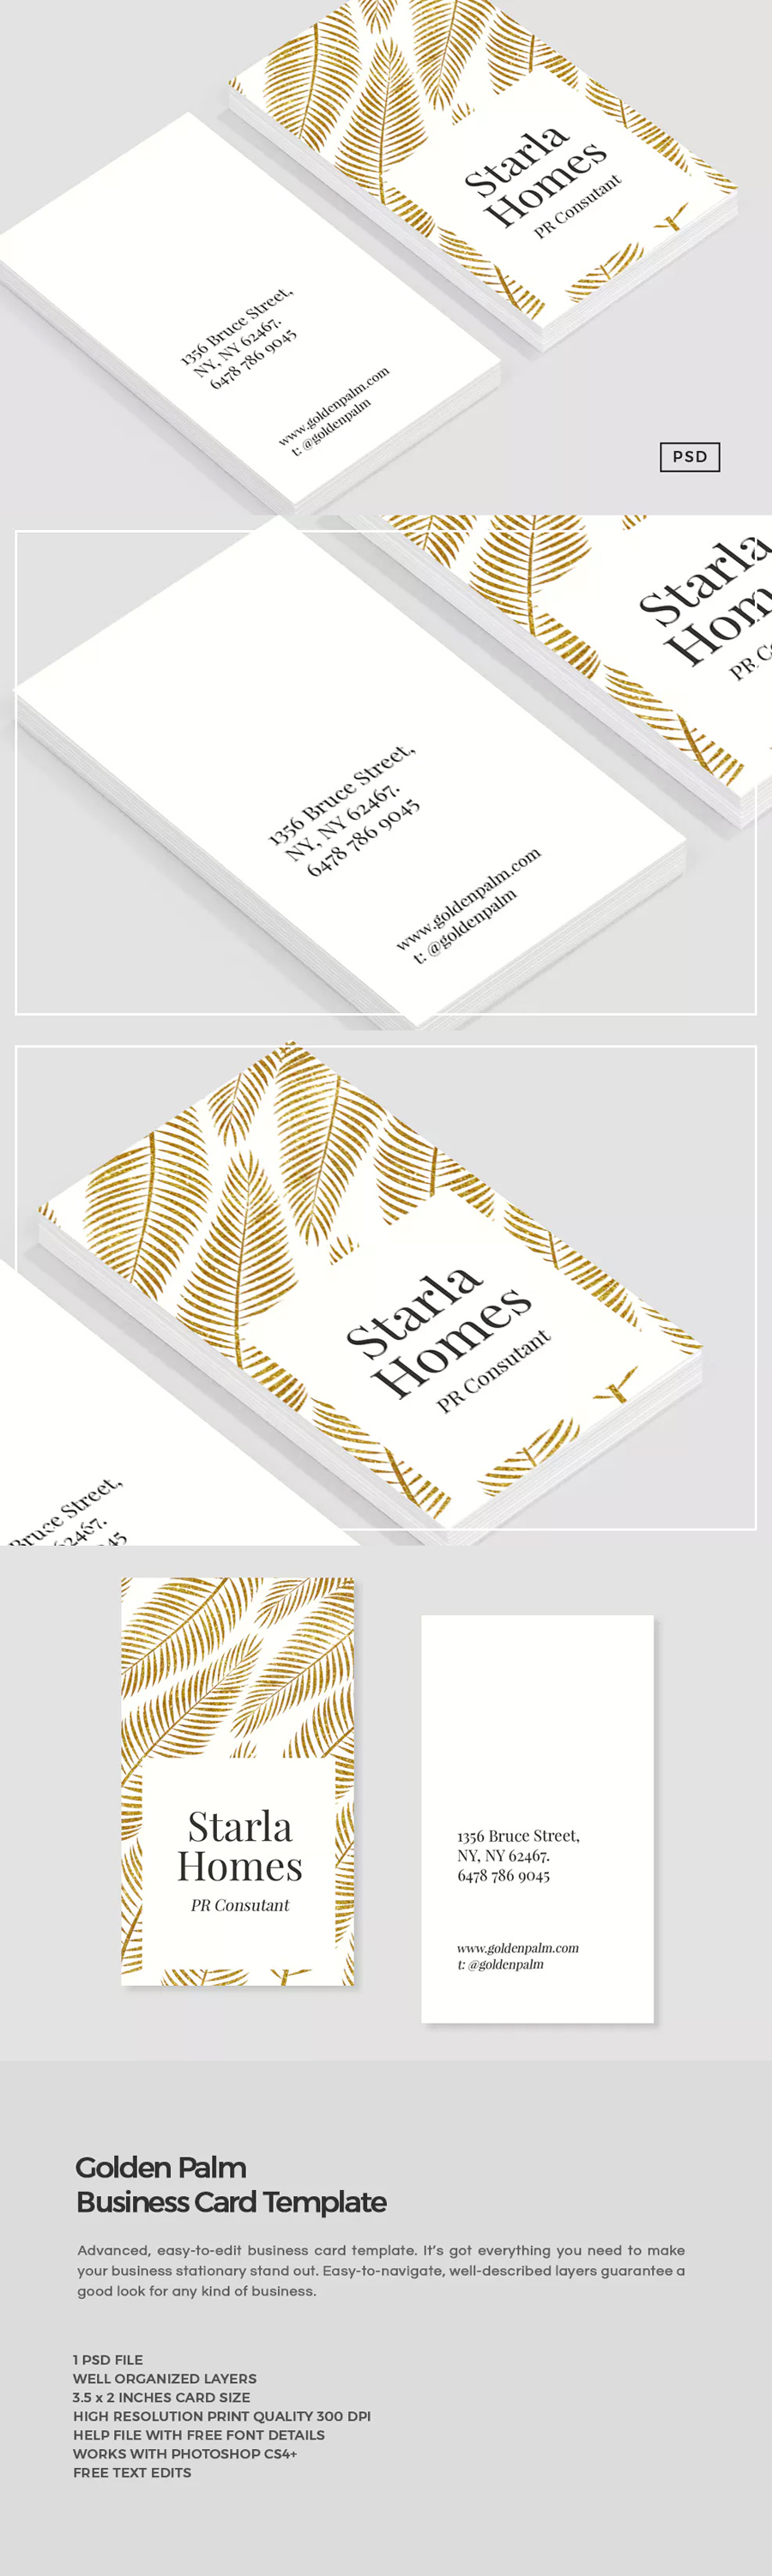 Golden Palm Business Card Template PSD | LOGO | Pinterest | Tarjeta ...